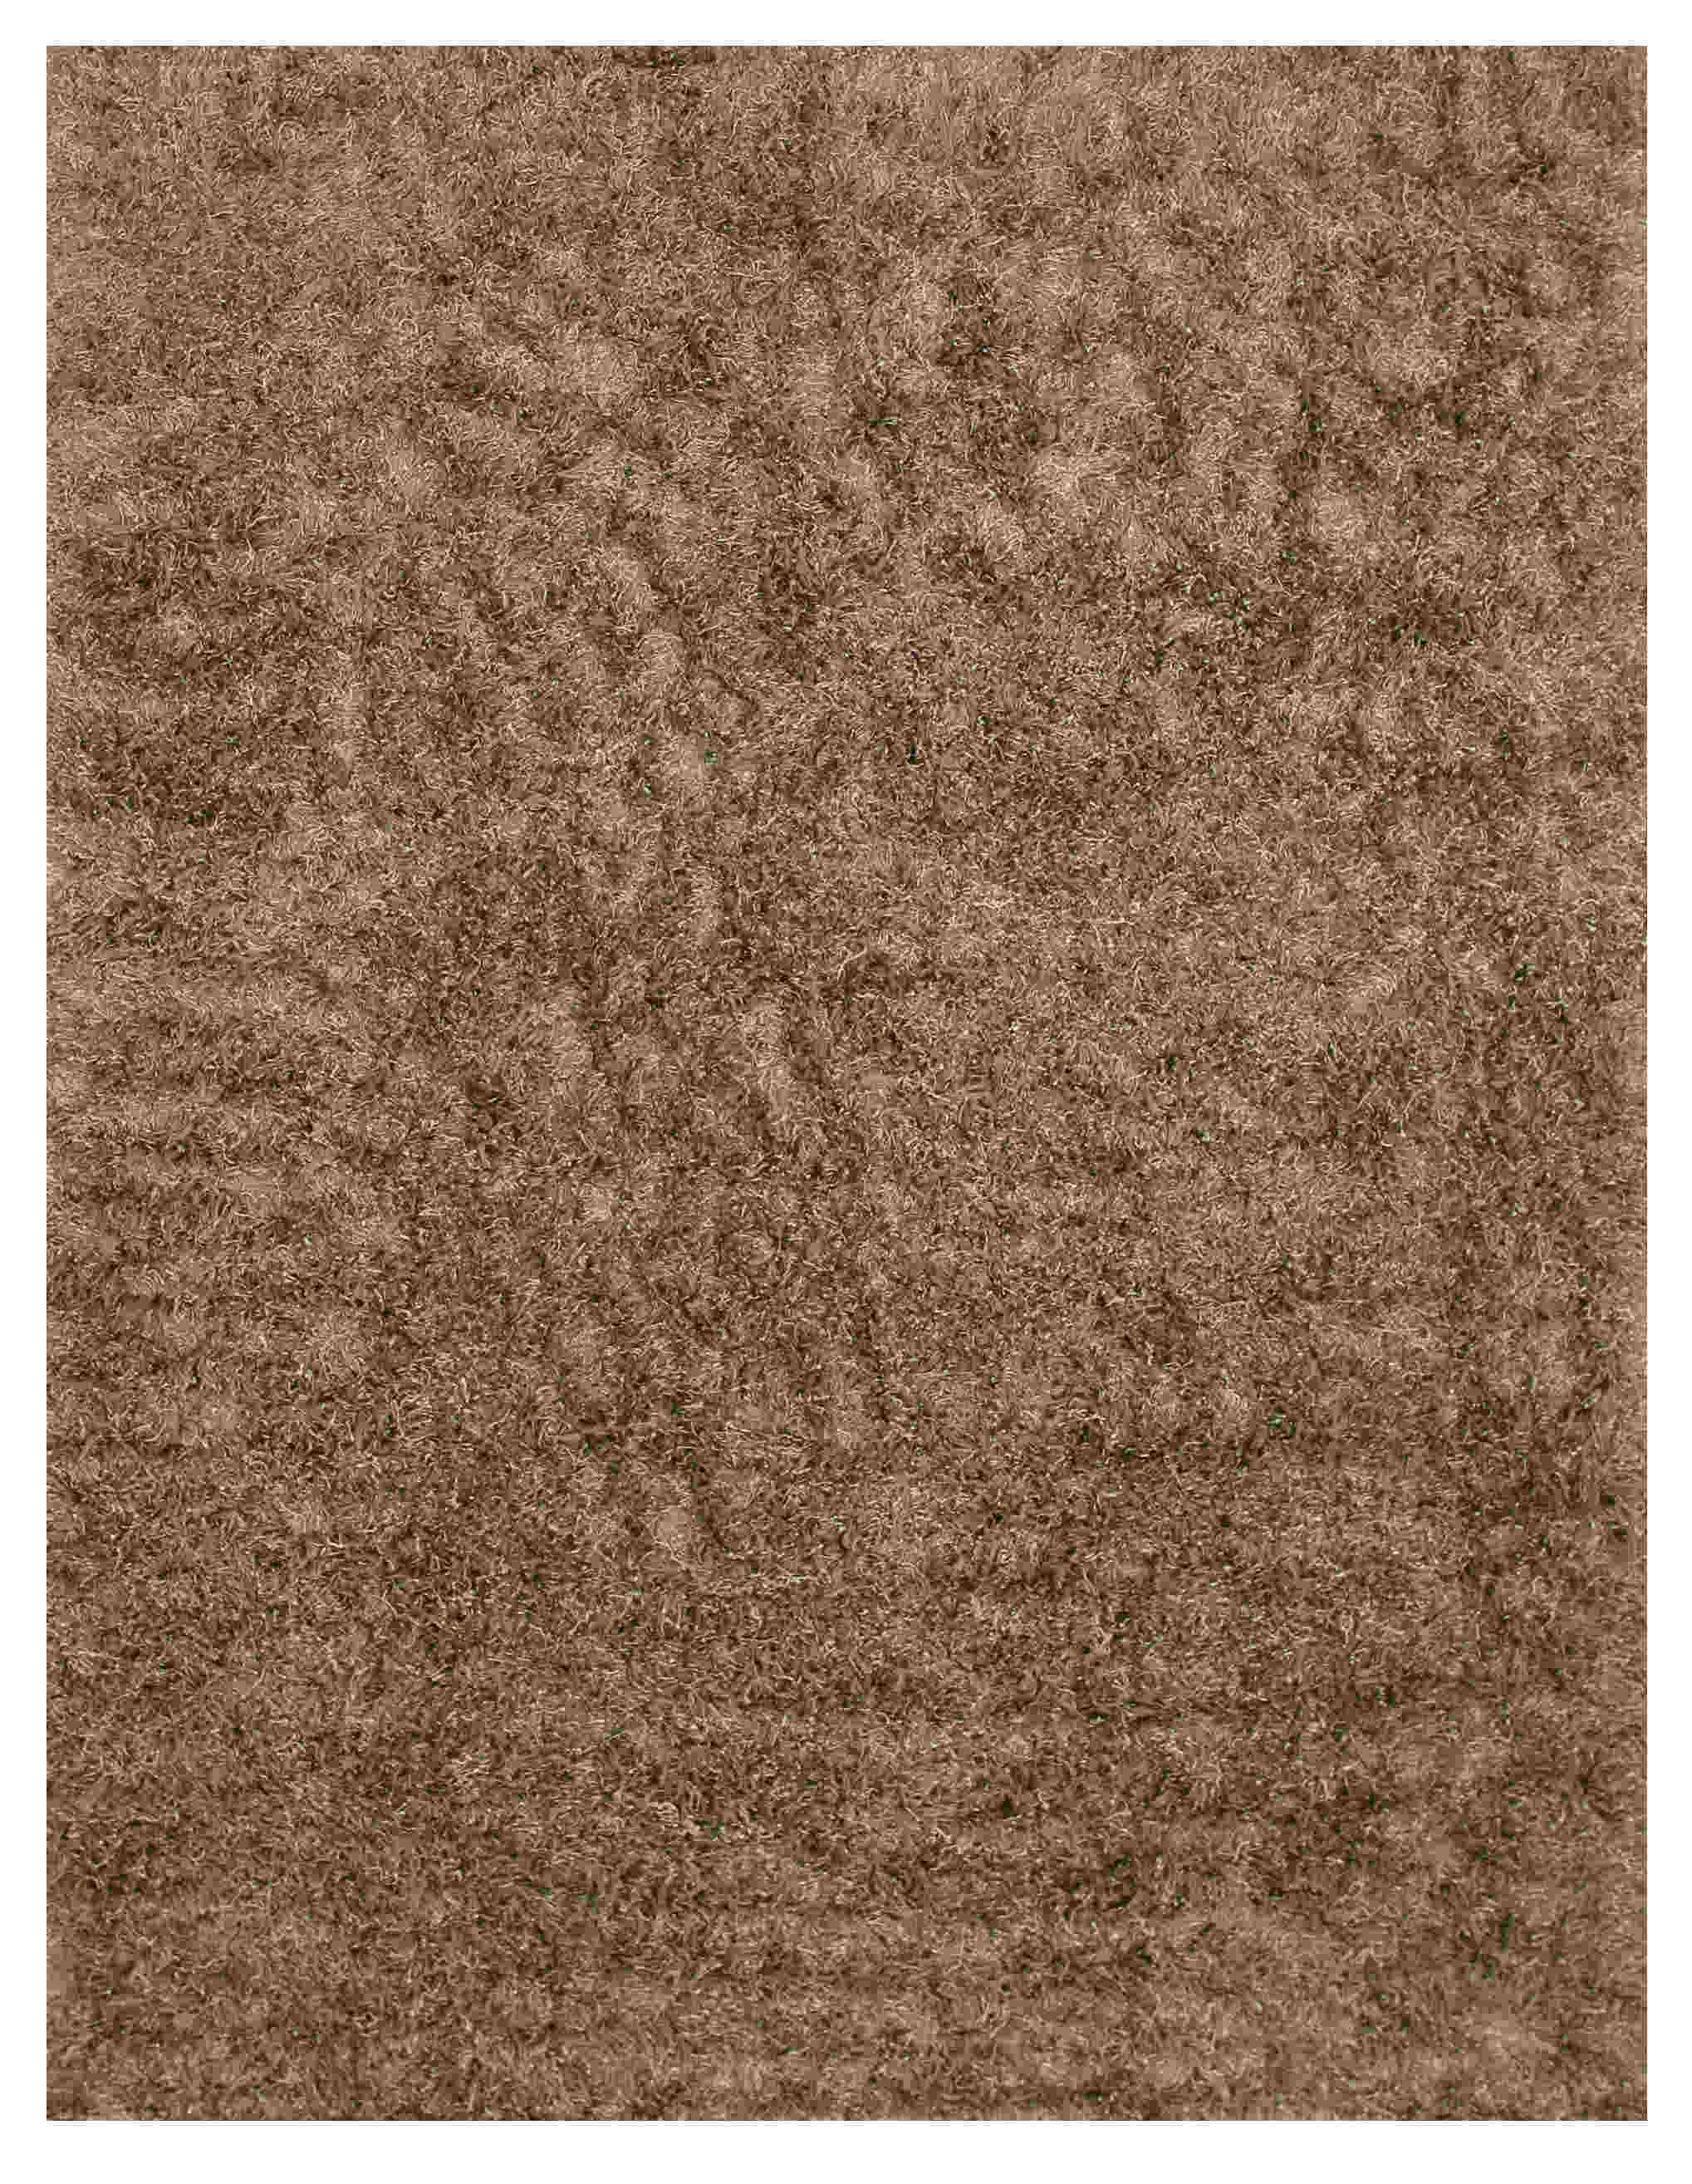 Eorc Oshg1mo Silver Handmade Wool And Viscose Shaggy Rug